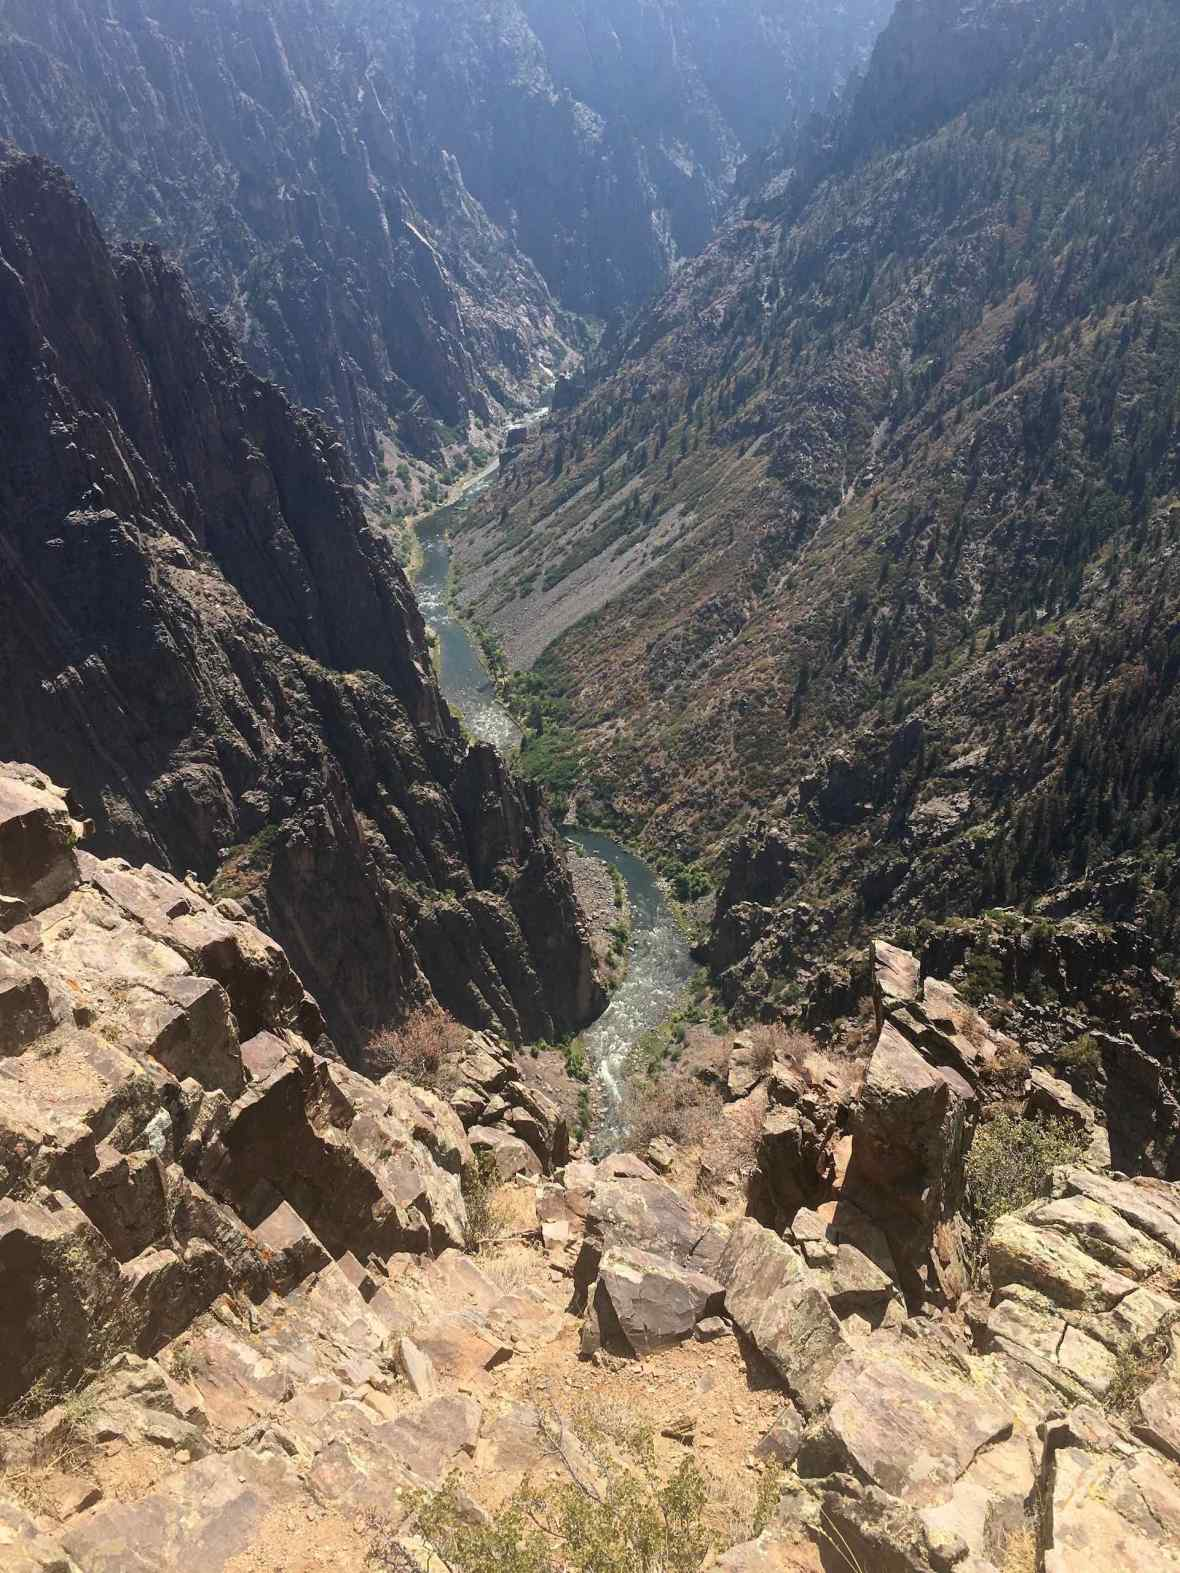 Gunnison River in Black Canyon of the Gunnison National Park, Colorado